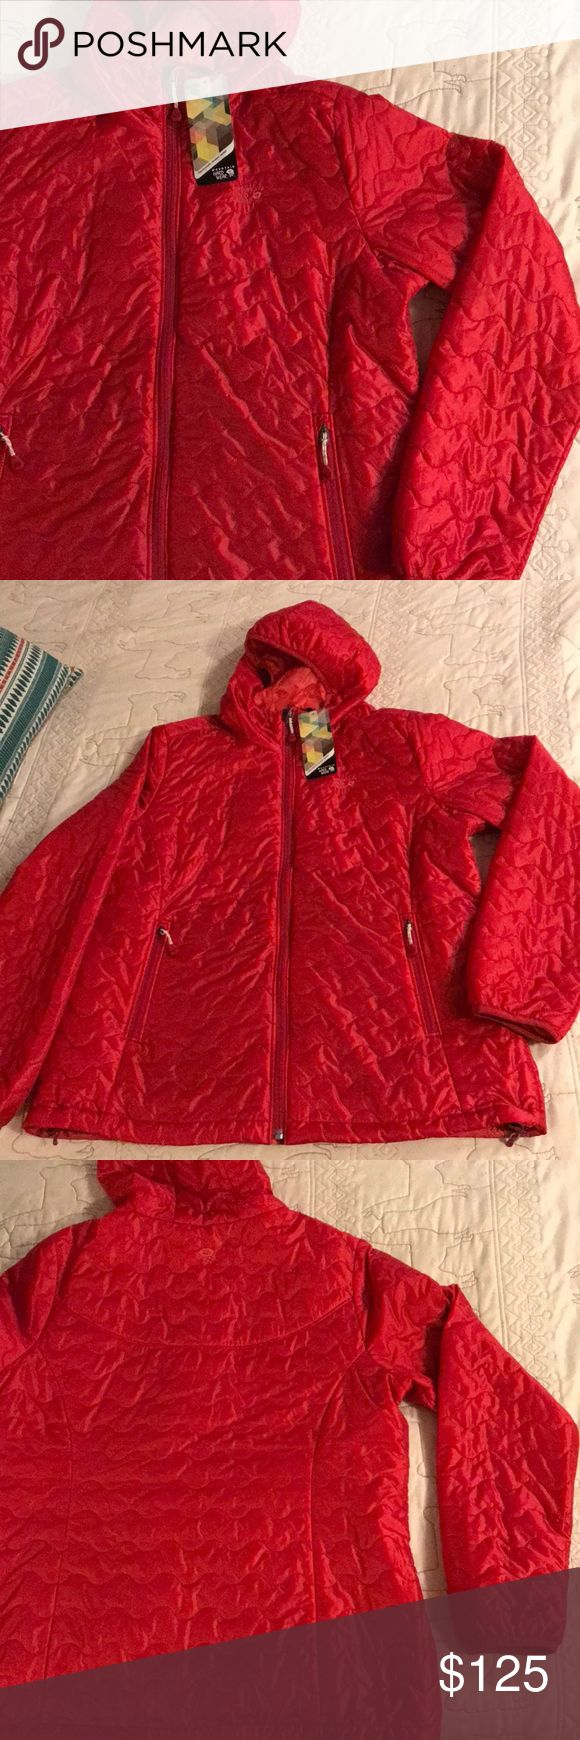 NWT Mountain Hardwear Thermostatic Hooded Jacket NWT Mountain Hardwear Thermostatic Hooded Jacket. New with tags. Purchased online and cannot return. Great color and fit. Didn't fit the person it was purchased for. Pictures from the internet show exact style and specifications. Jacket is a burnt orange/red color. Purchased on sale for $228. Regularly $295. Mountain Hardwear Jackets & Coats